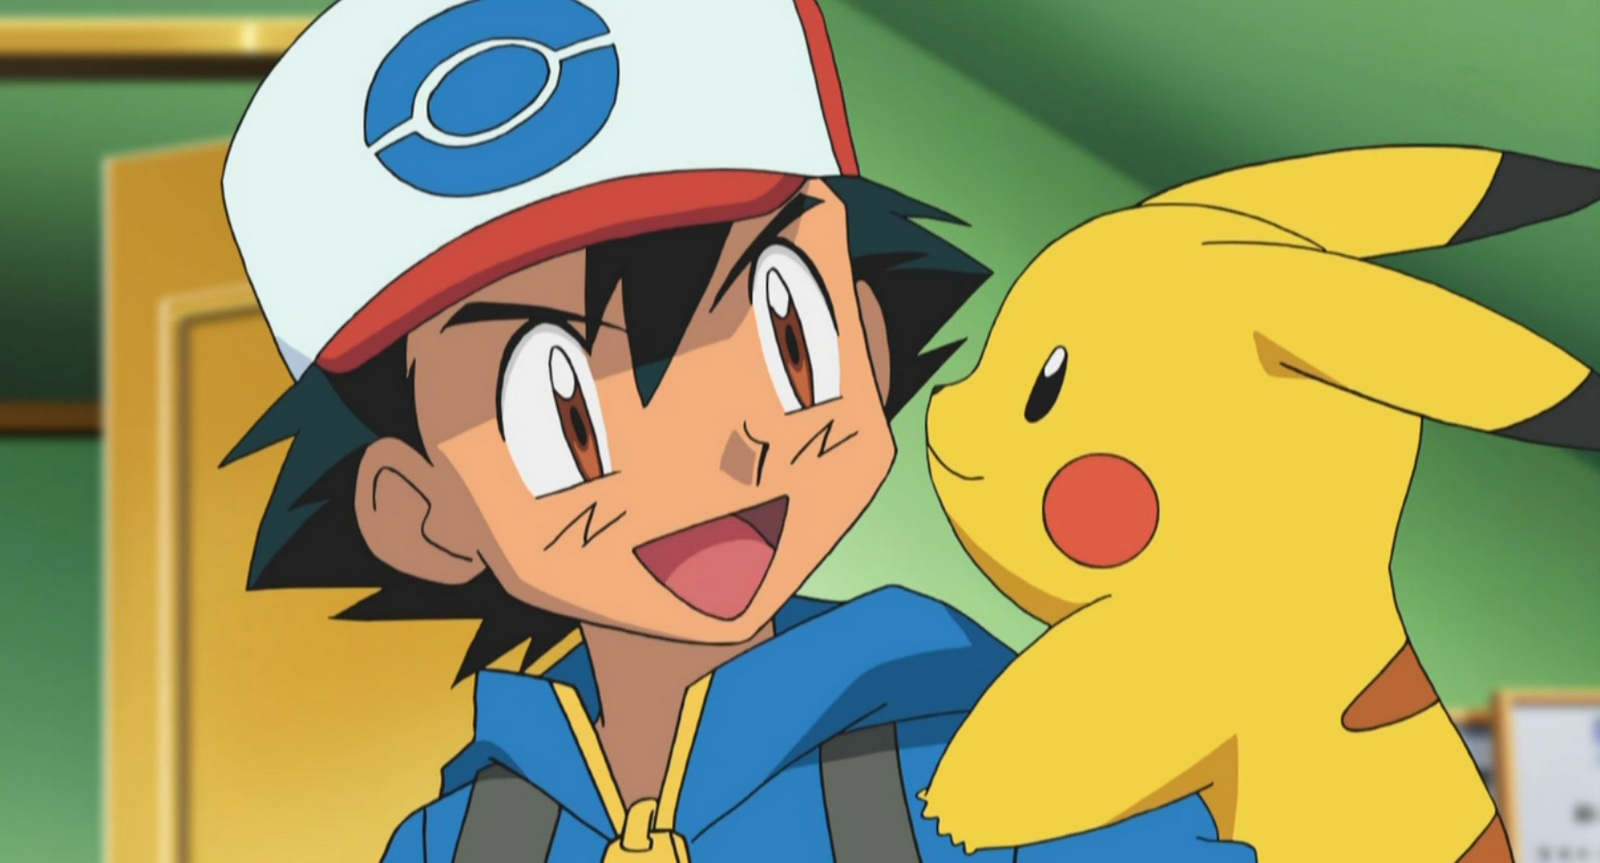 The first things I noticed as when something was up, is when Ash wakes up  in his room and Pikachu greets him by jumping on his shoulder and saying,  ...